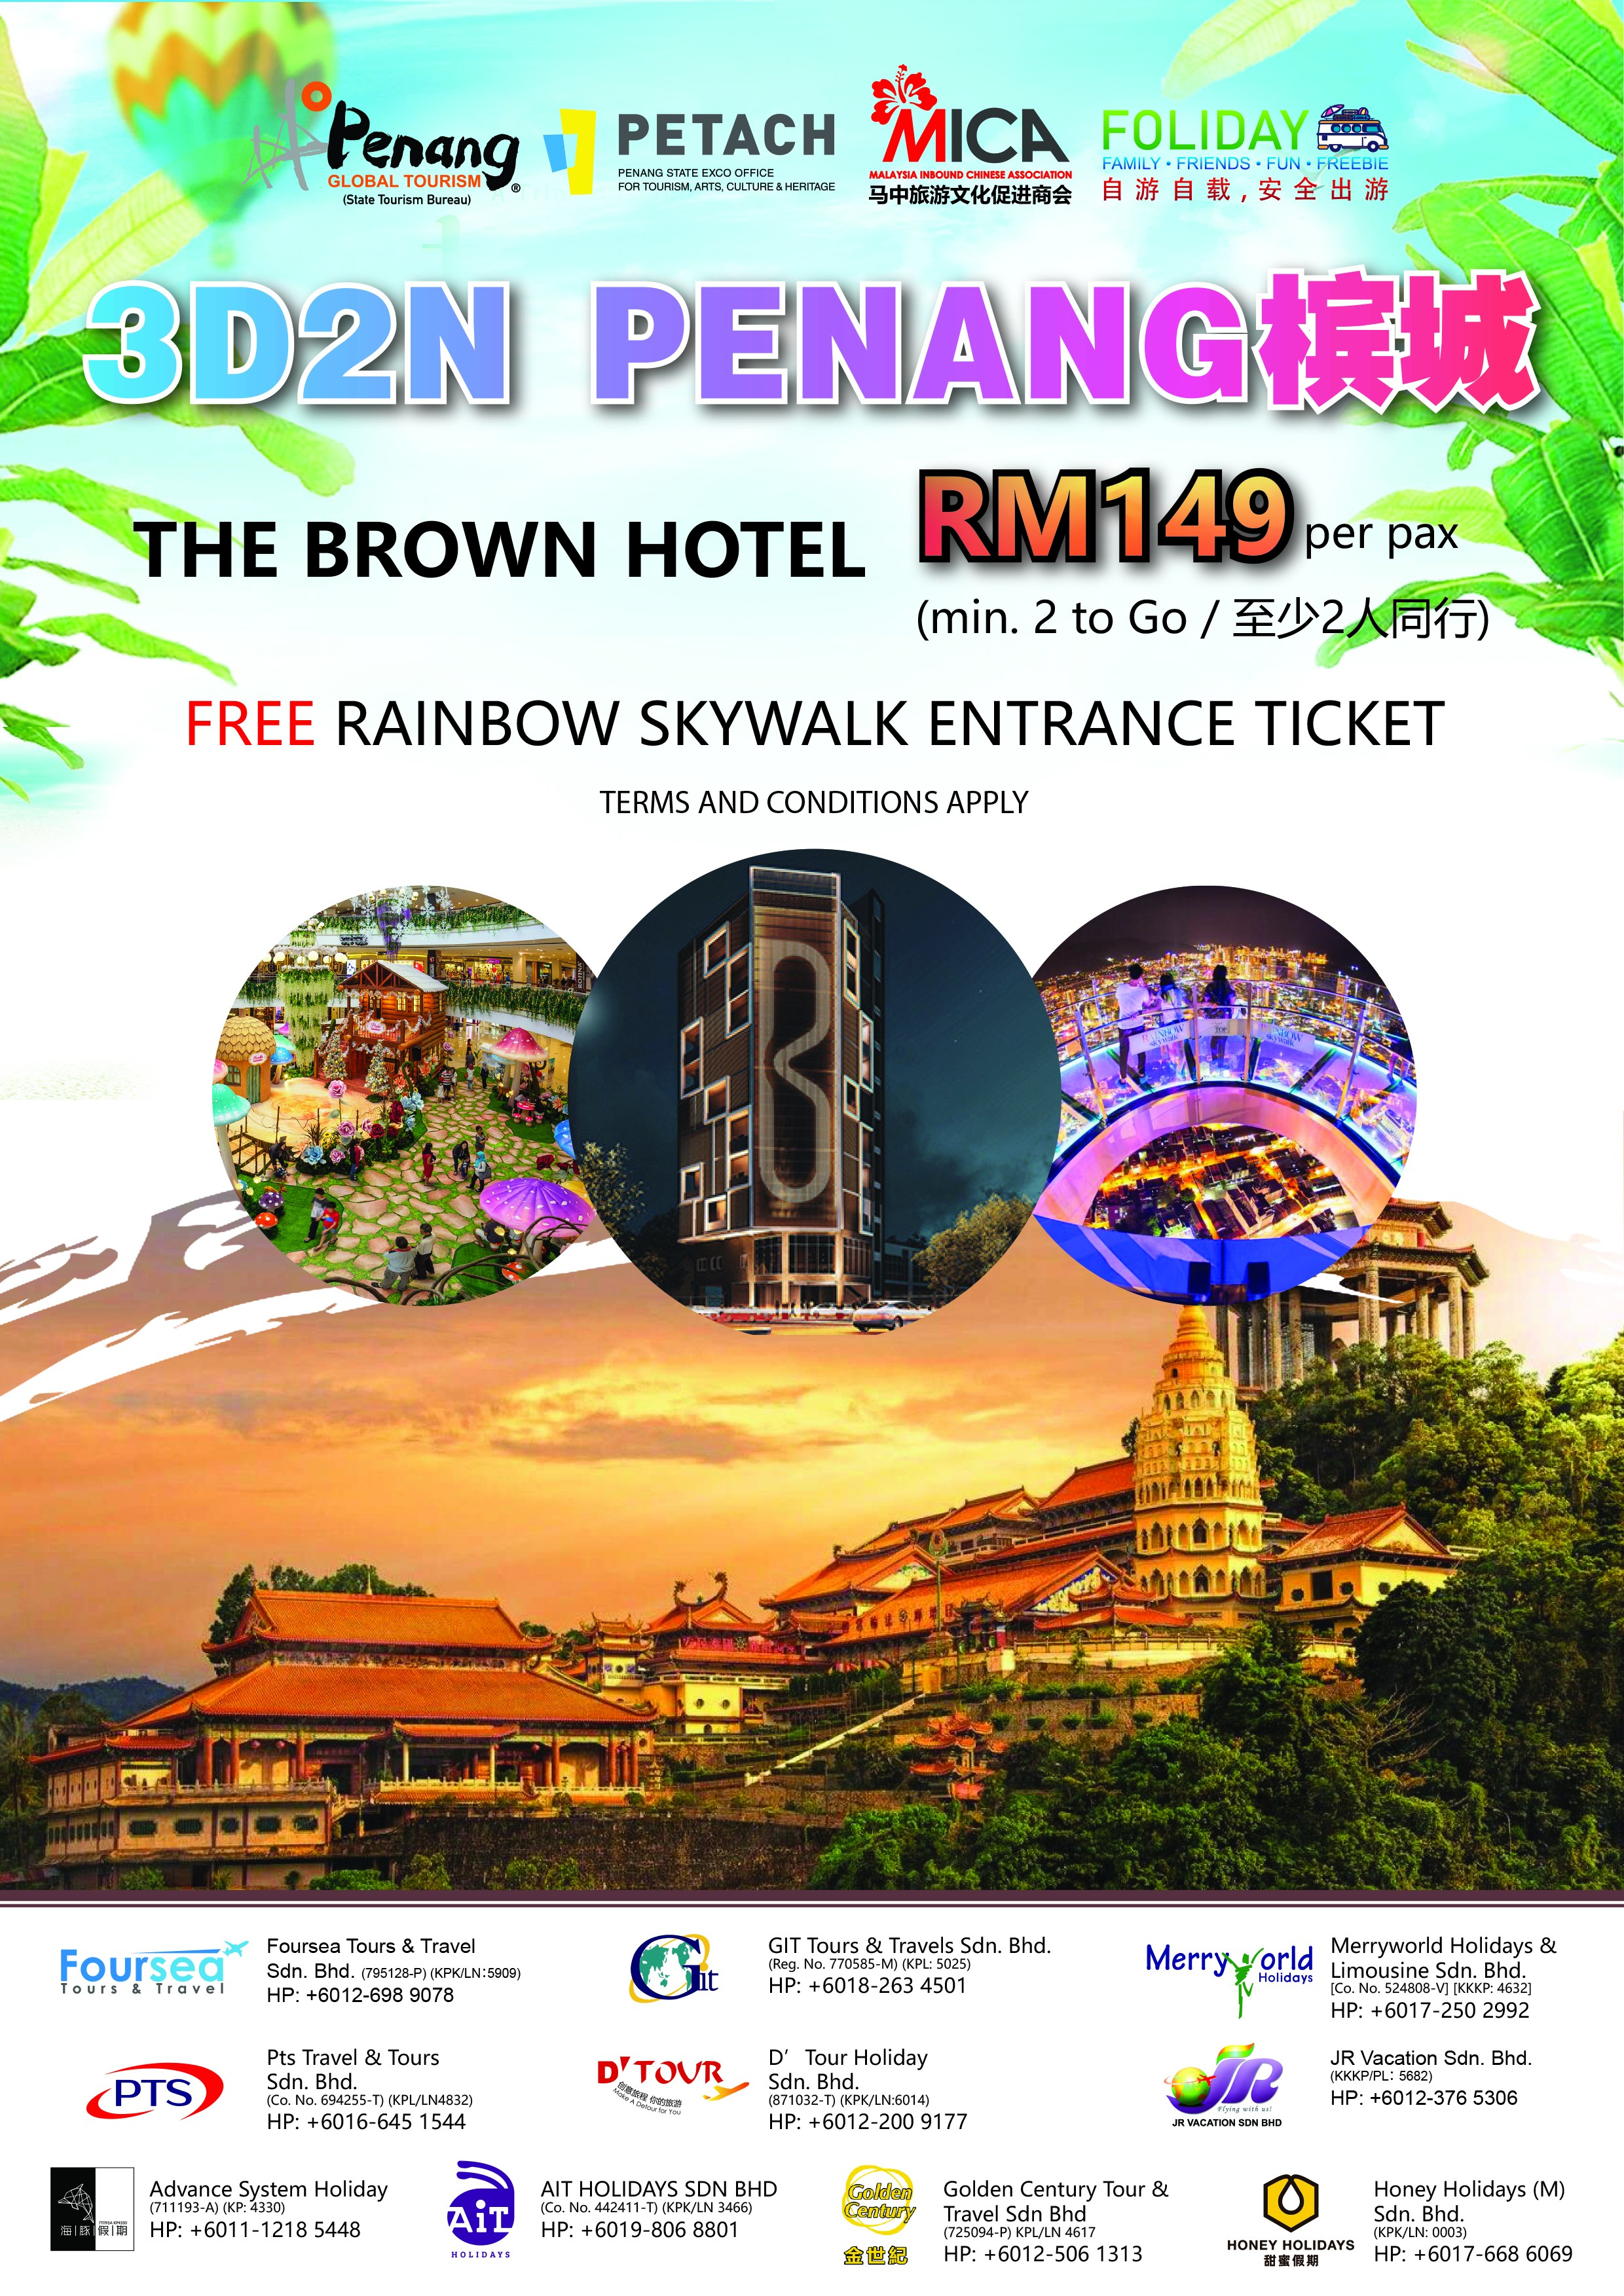 3D2N Penang - The Brown Hotel